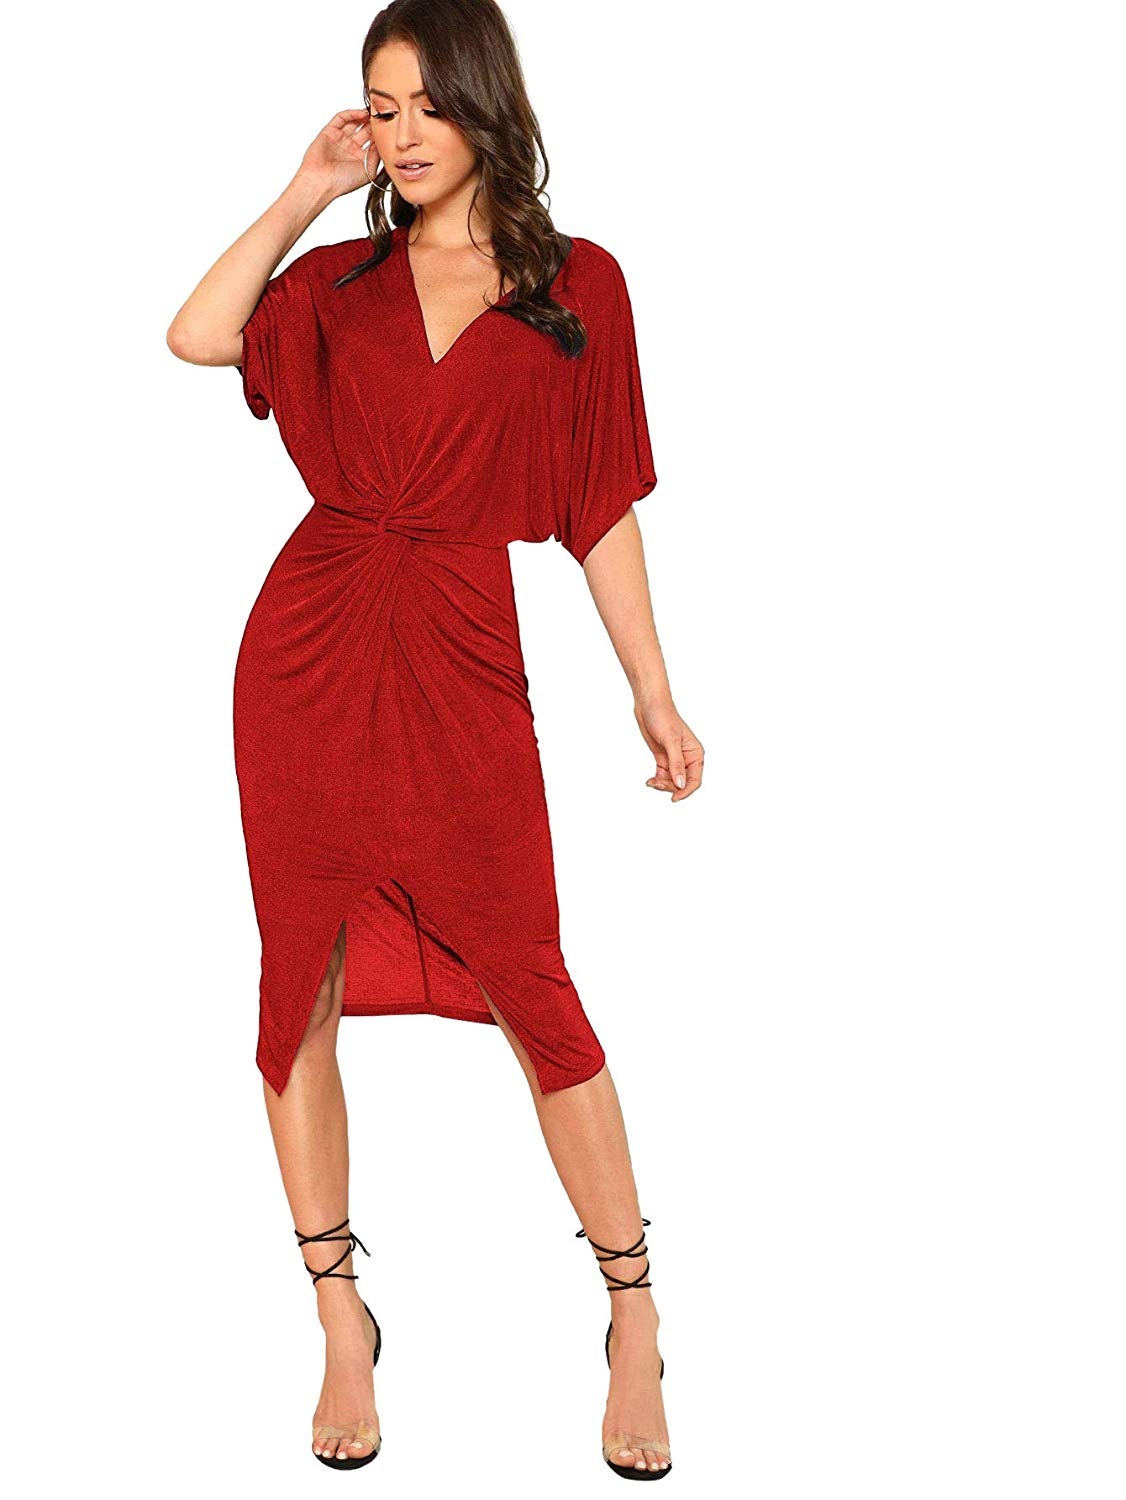 Amazon Prime Day: Floerns Women's Short Sleeve V-Neck Twist Front Split Midi Dress